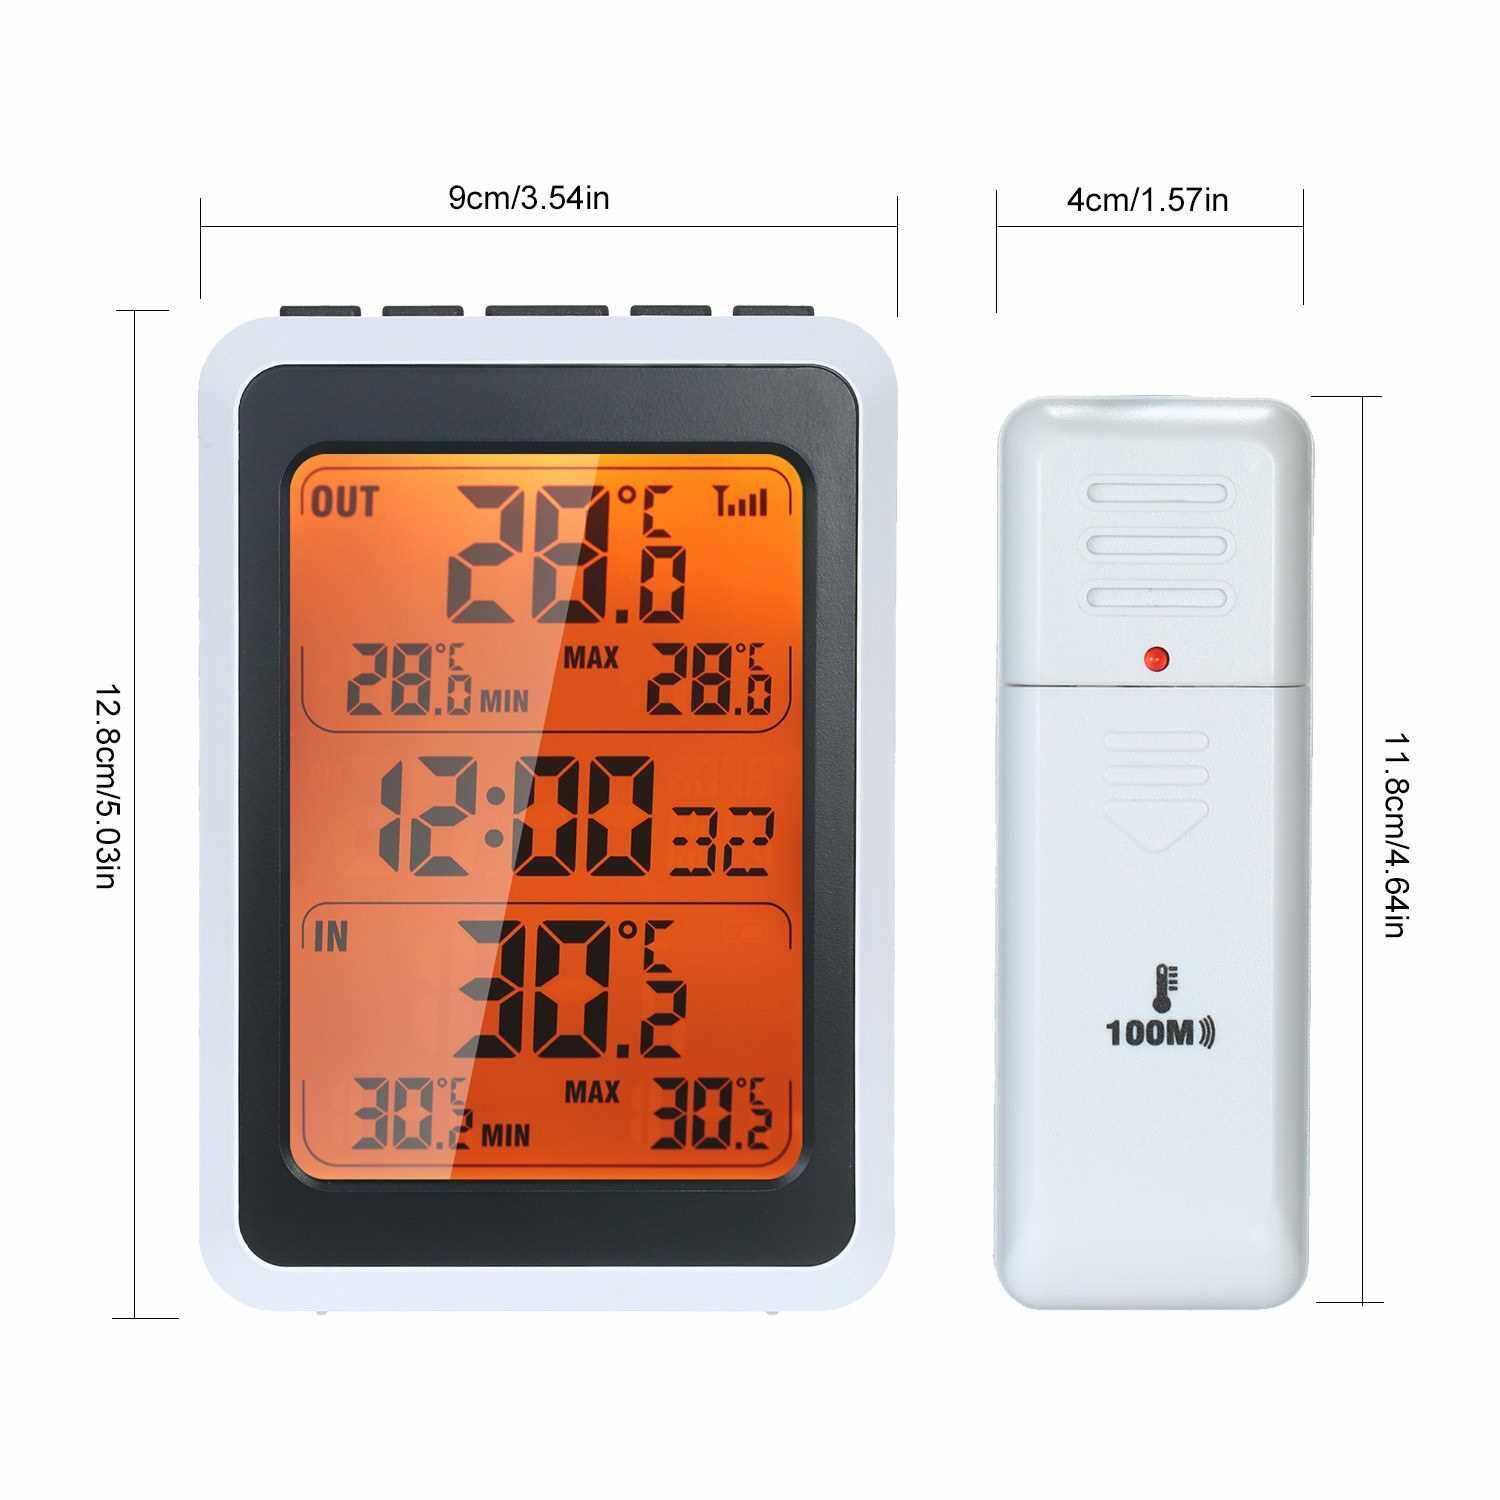 Indoor Outdoor Wireless Thermometer Digital Room Temperature Monitor Up to 328ft Away with Time Alarm Clock Backlight (Standard)